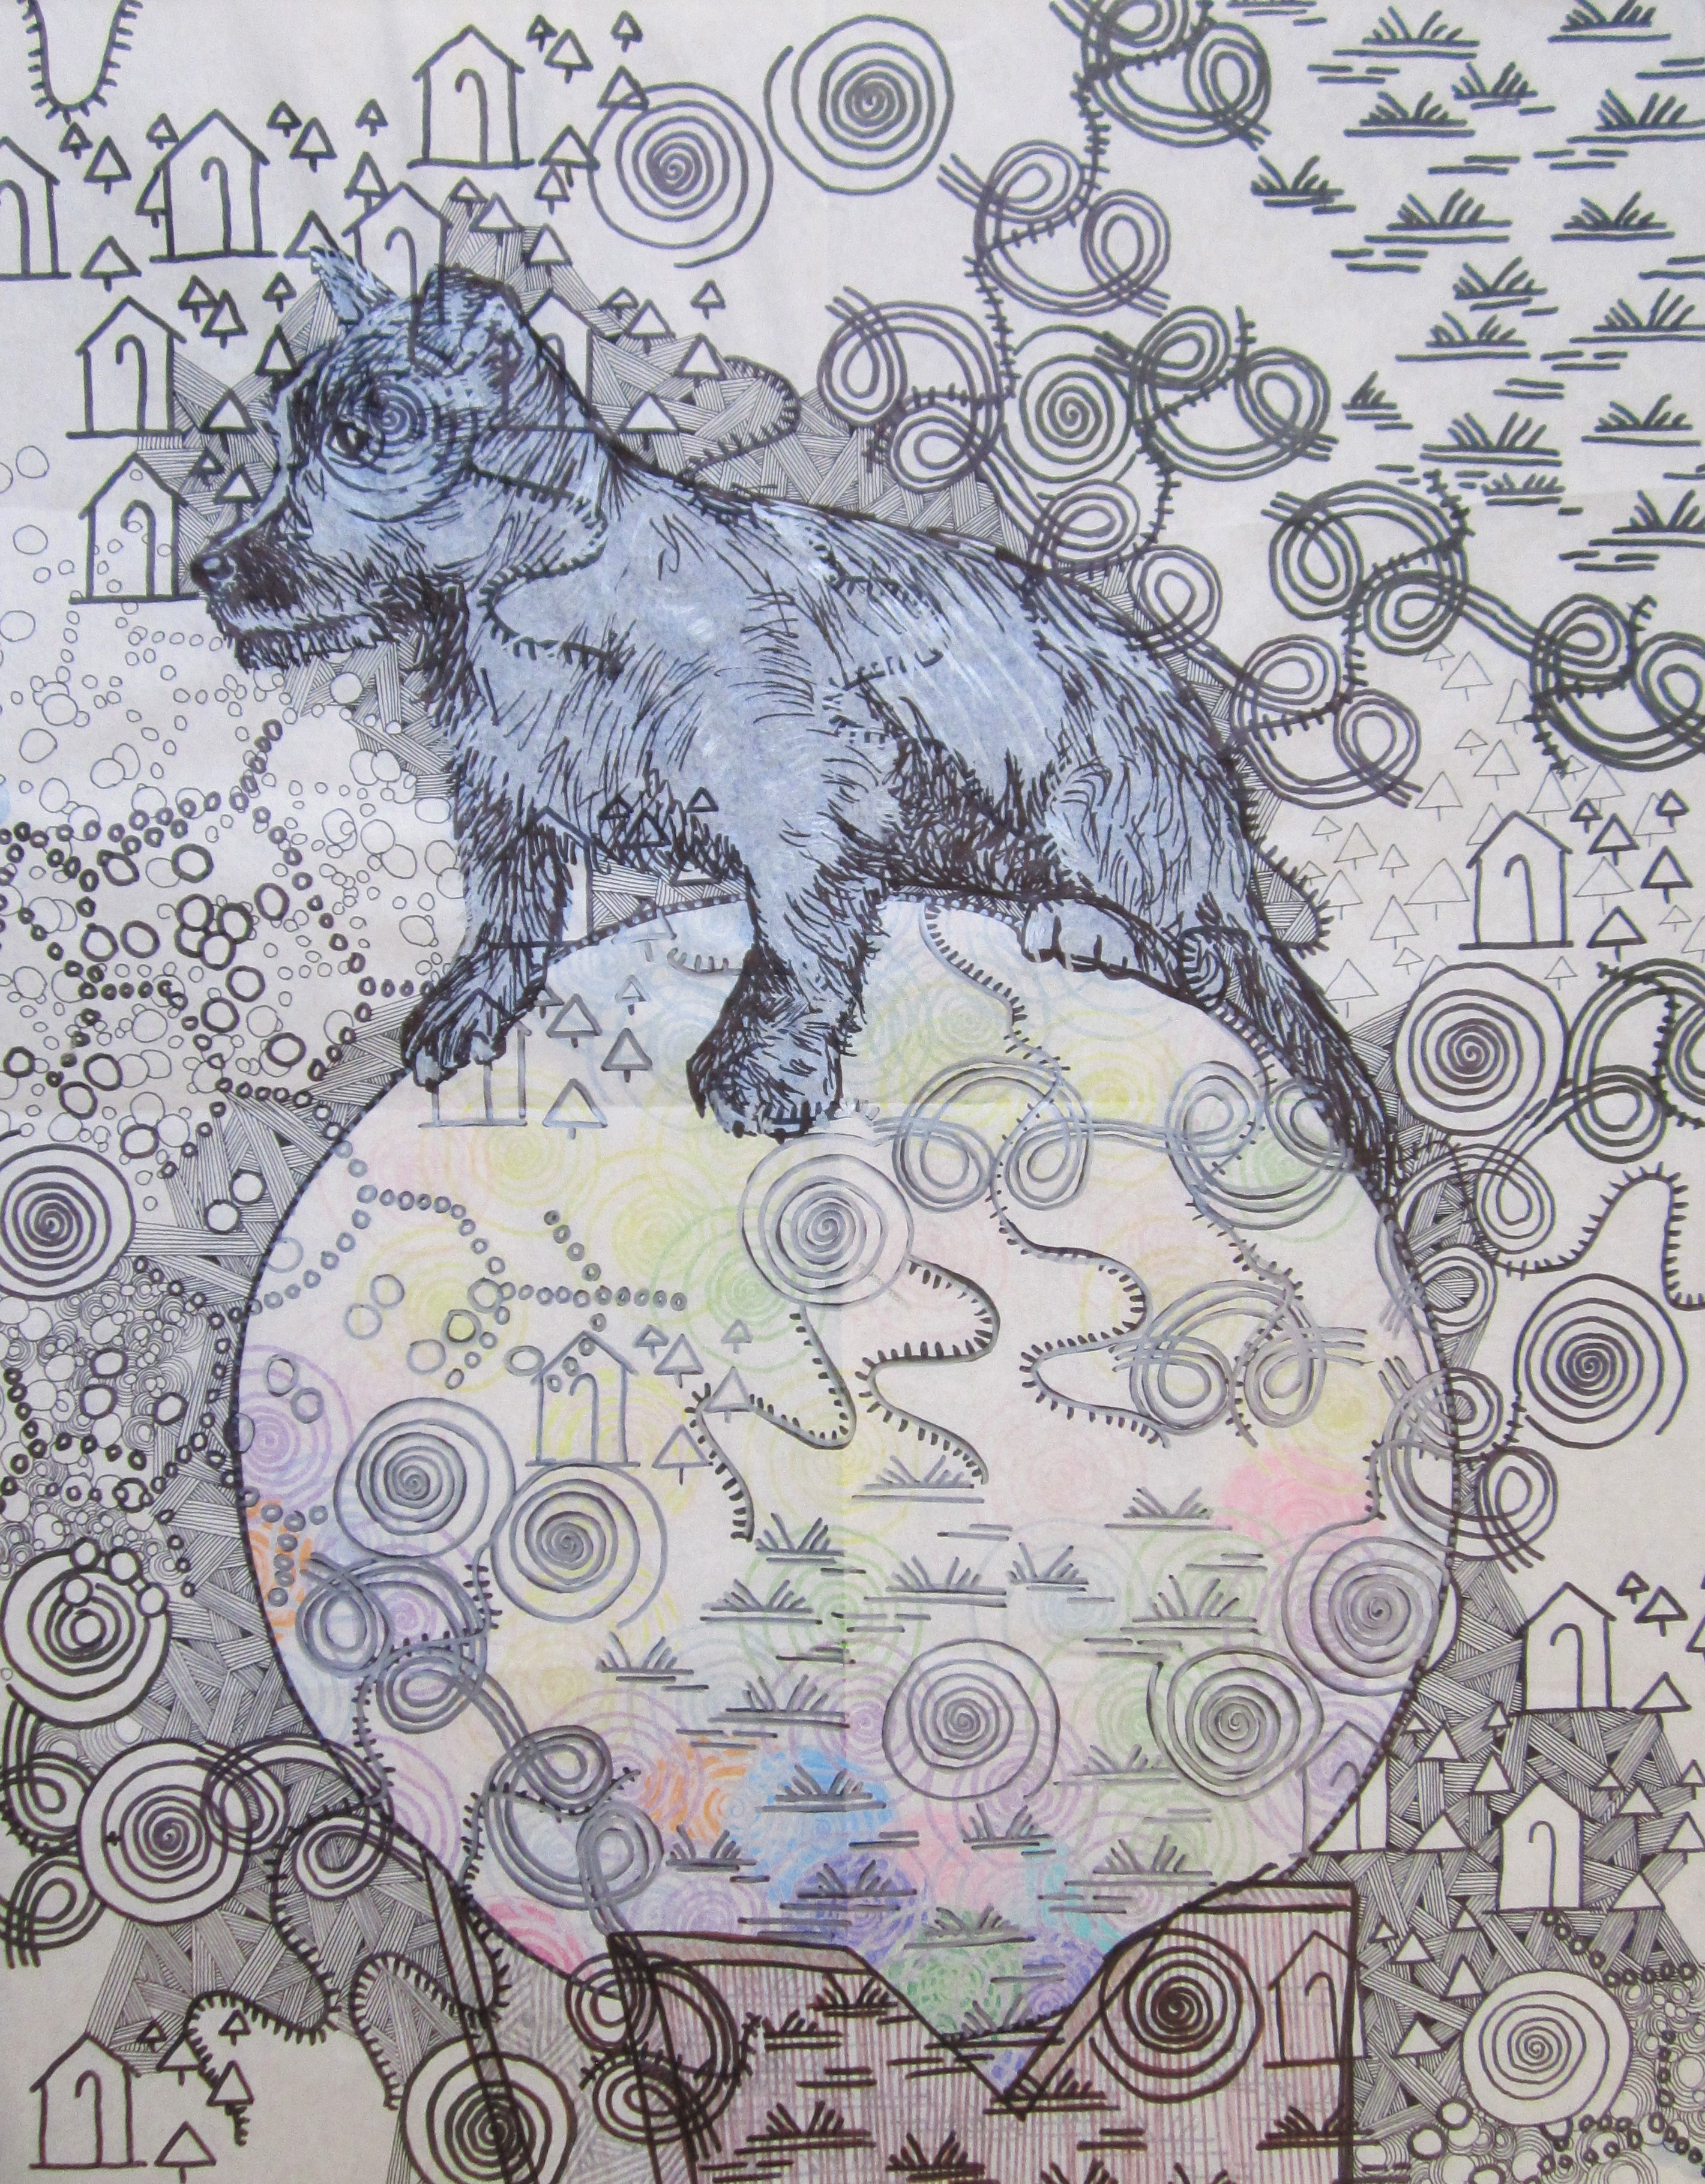 dog standing on a large ball surrounded by layers of pattern